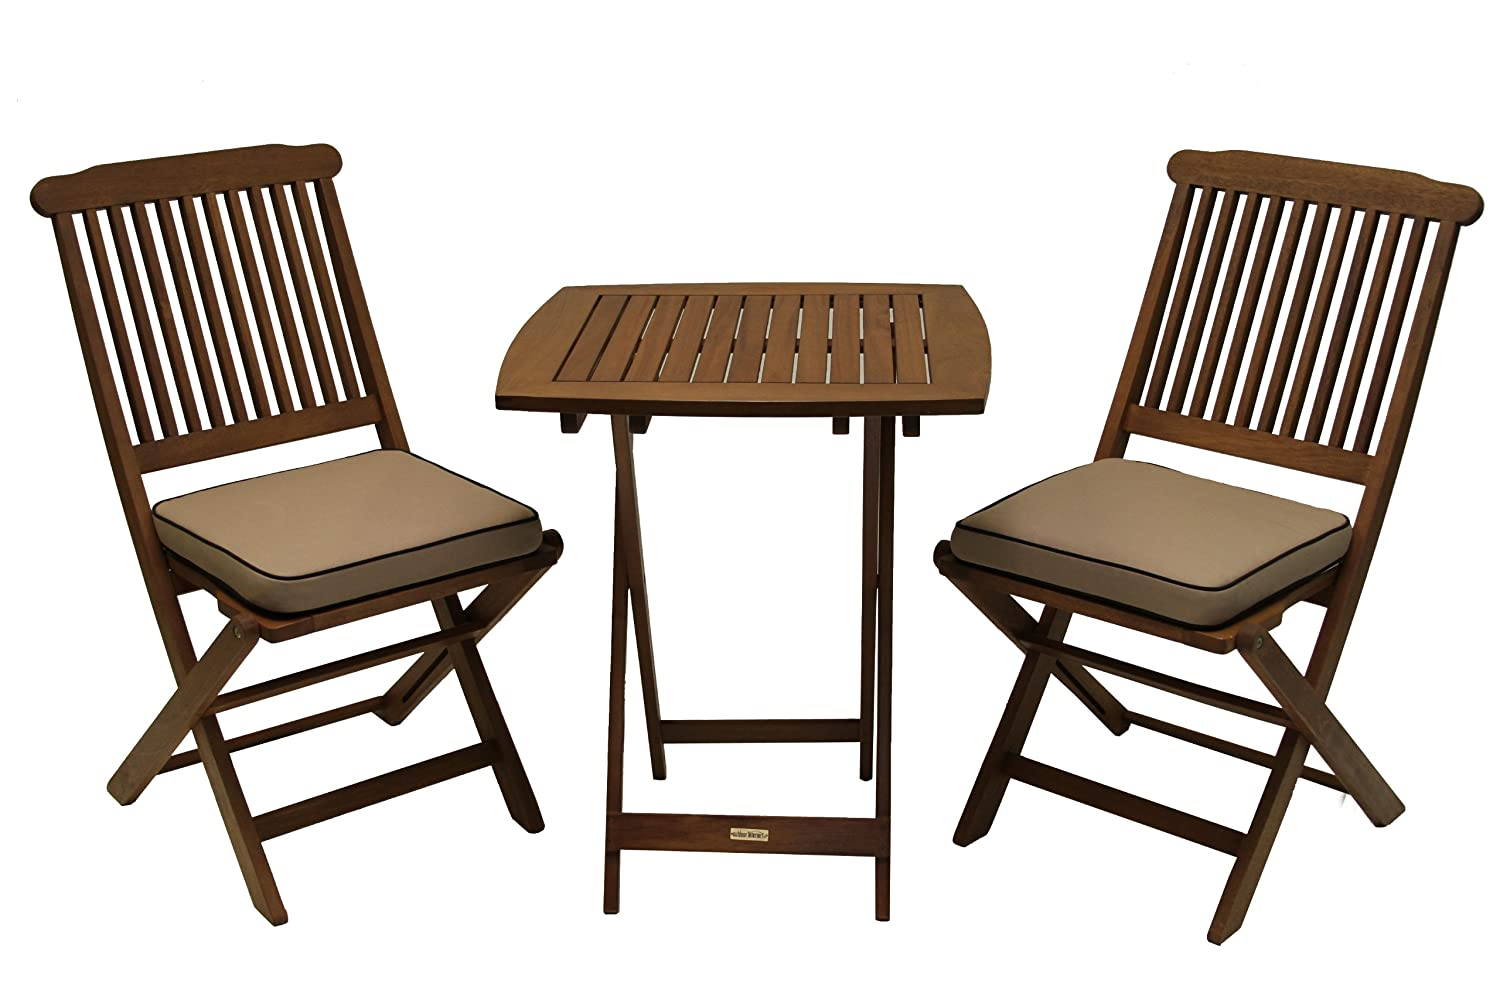 Wood patio furniture sets at the galleria for Outdoor patio furniture sets